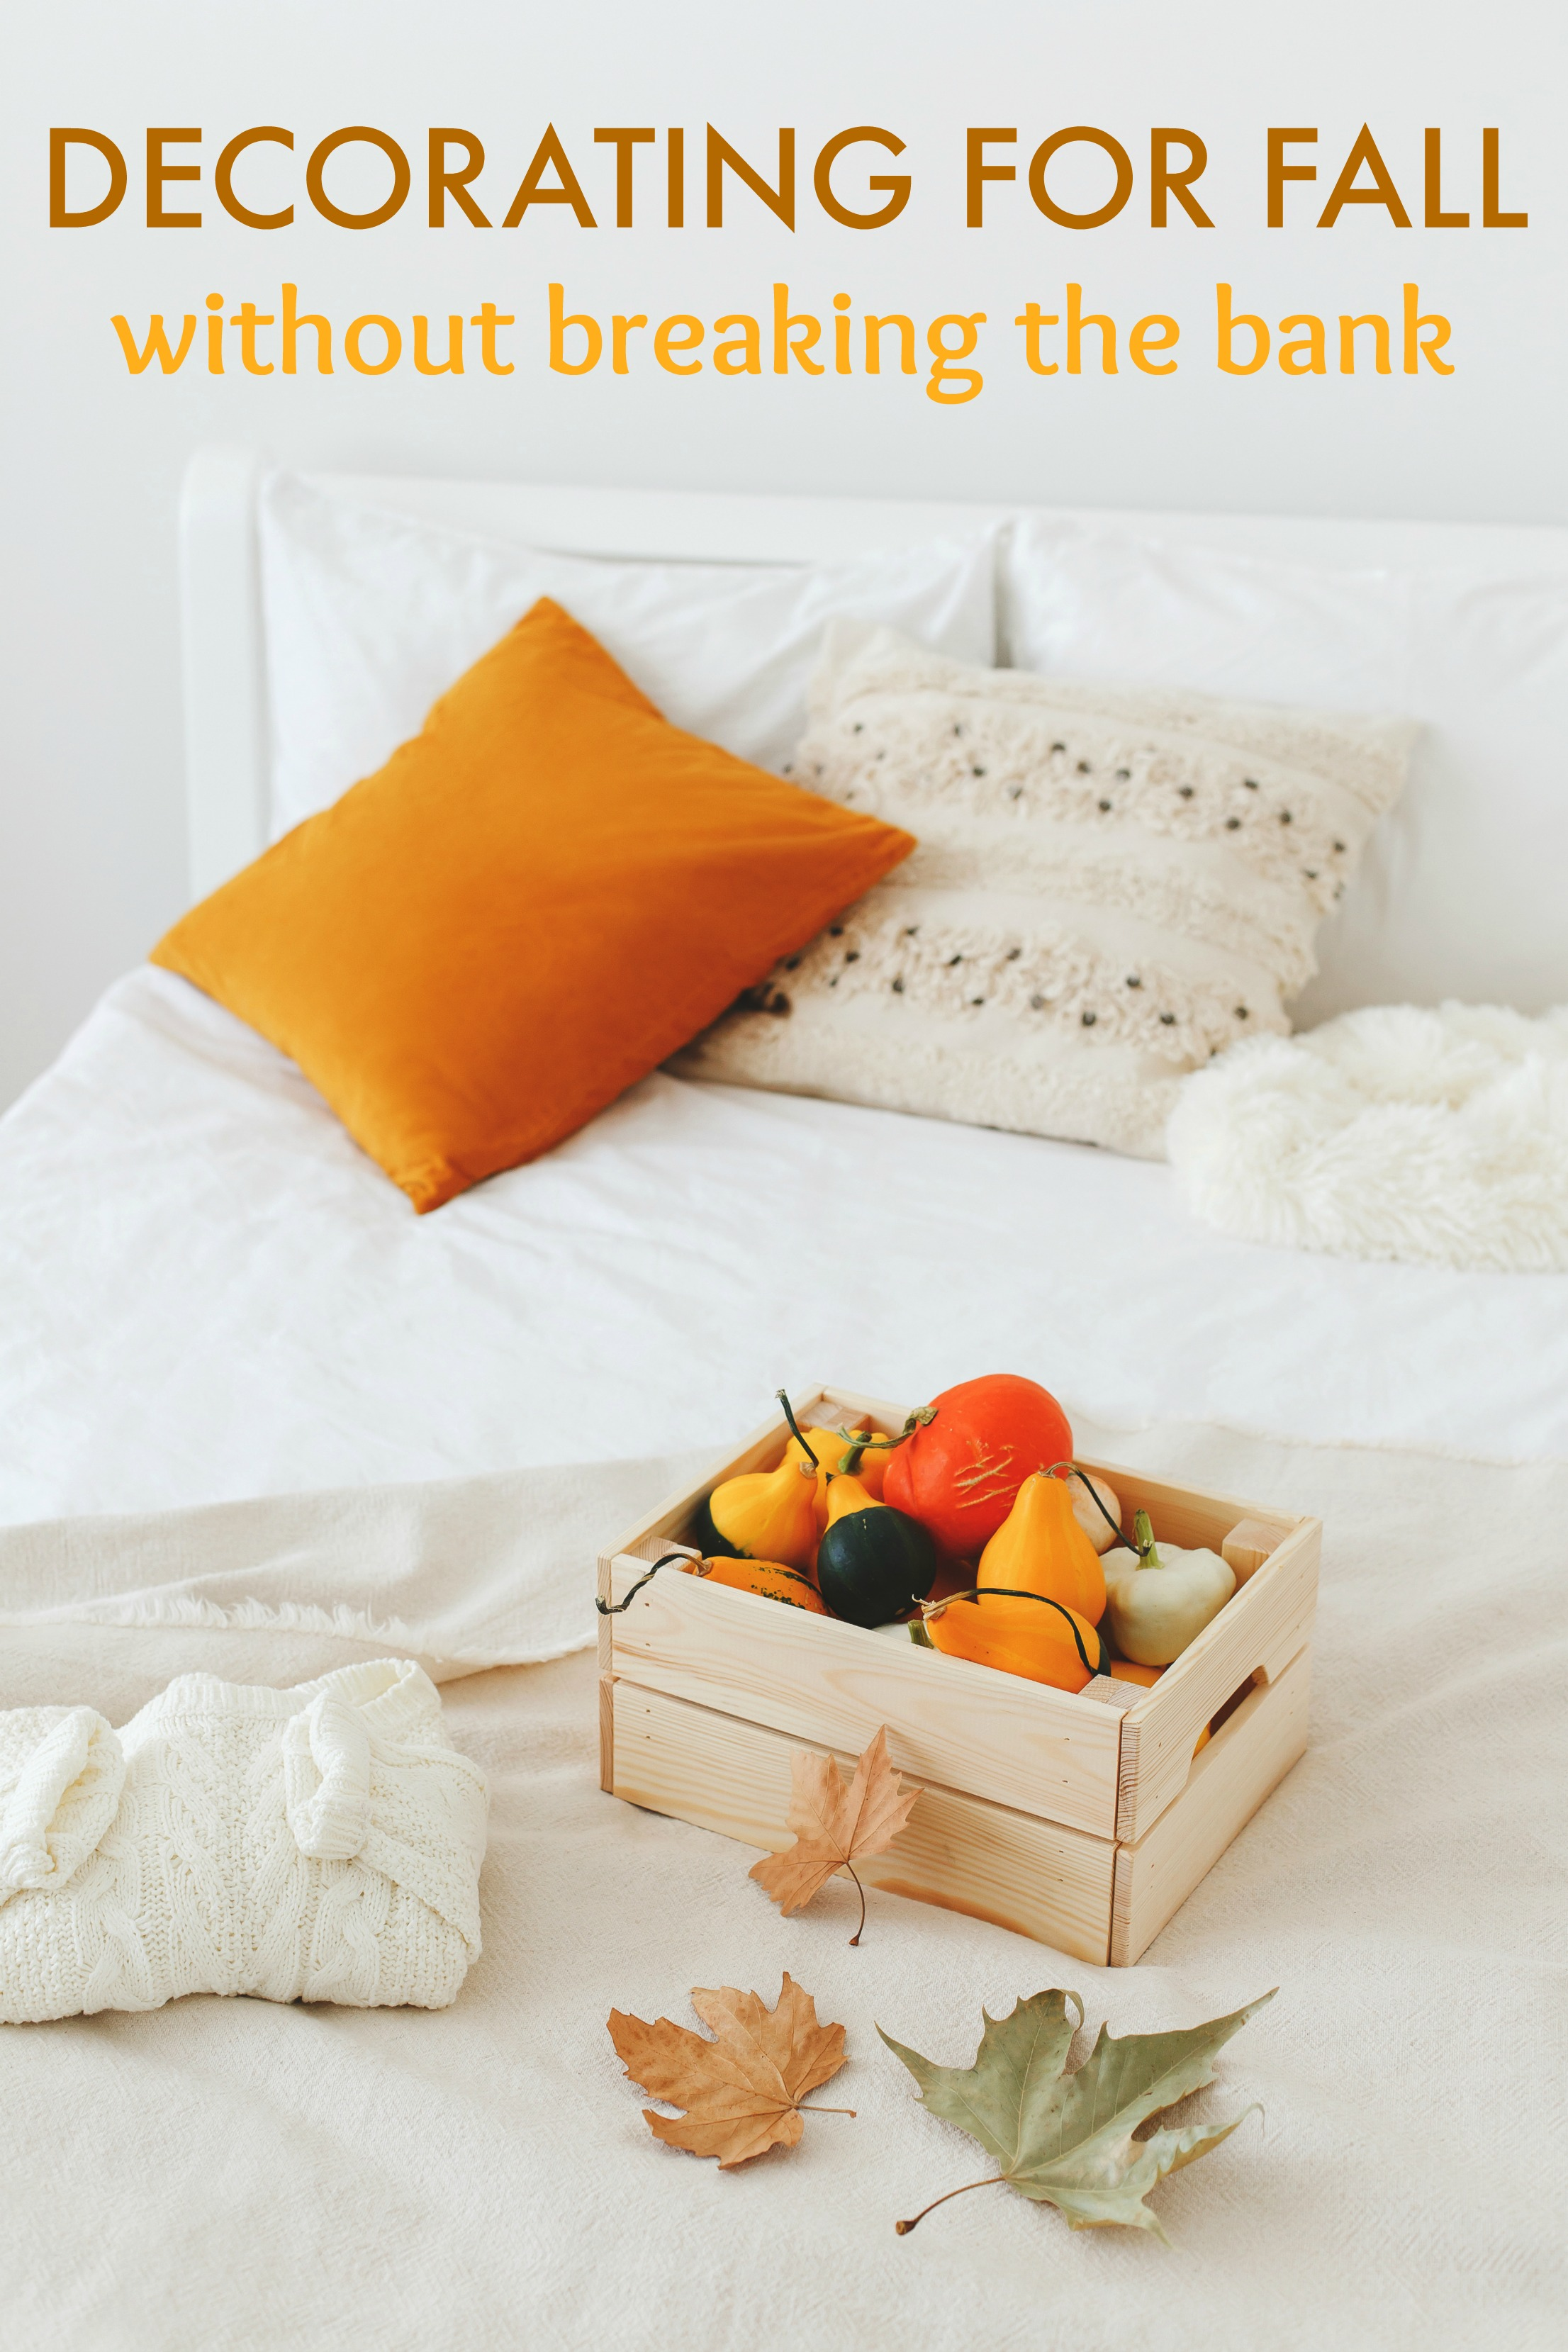 decorating for fall without breaking the bank